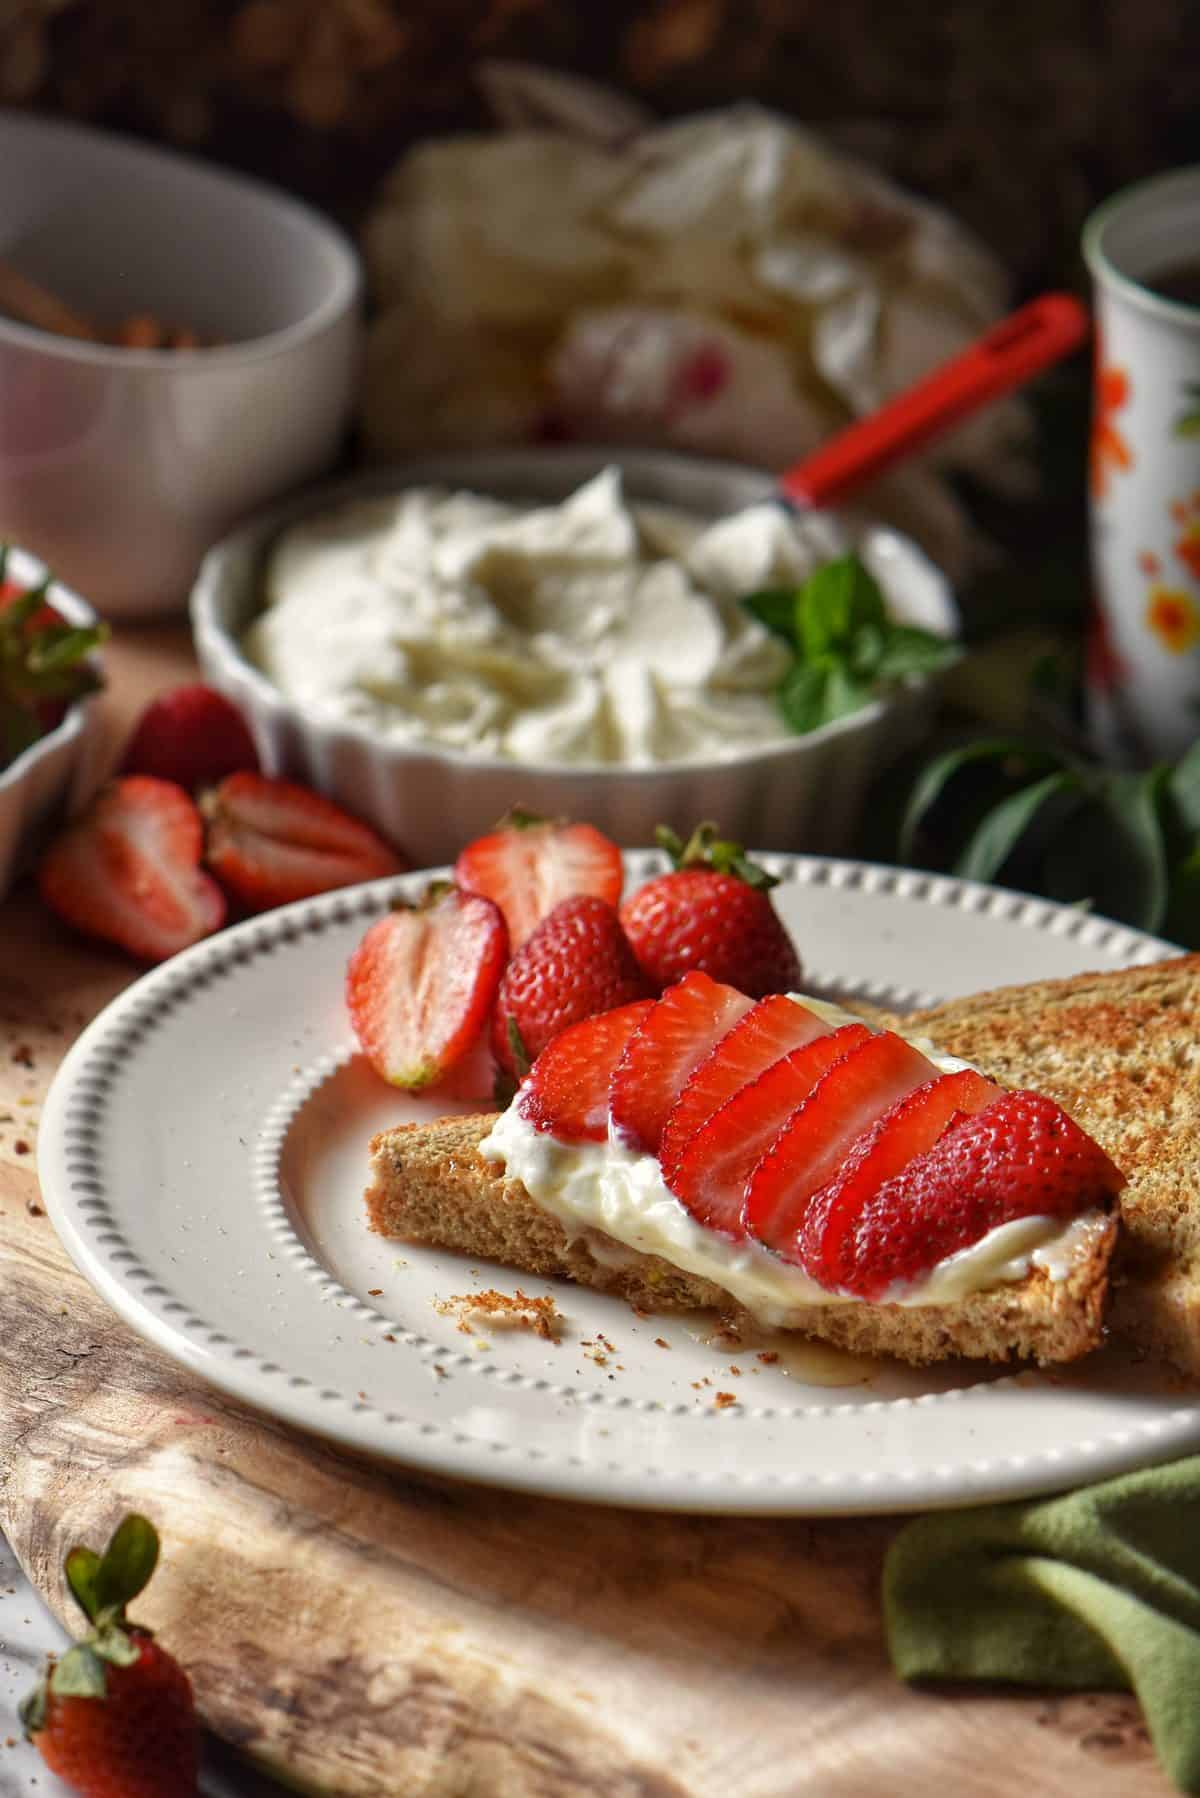 Toast on a white plate garnished with ricotta and strawberries.